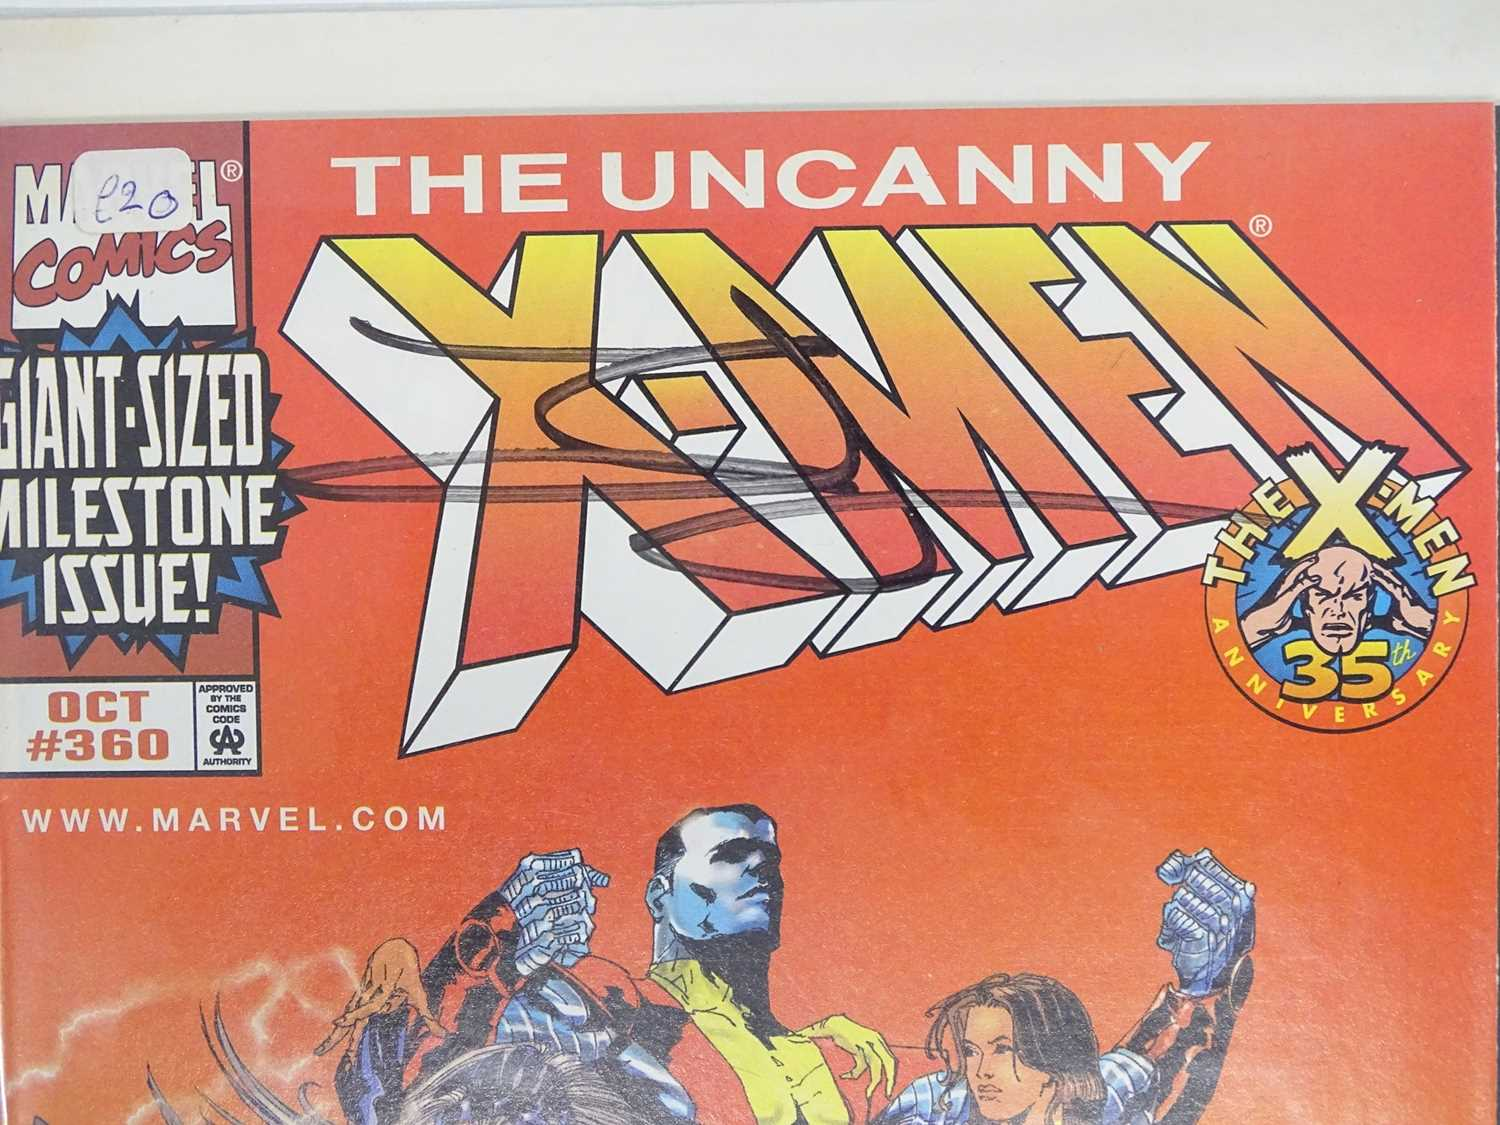 UNCANNY X-MEN #360 - (MARVEL - 1998) - Signed to Front Cover by Jae Lee and Numbered #2547/10, - Image 2 of 4